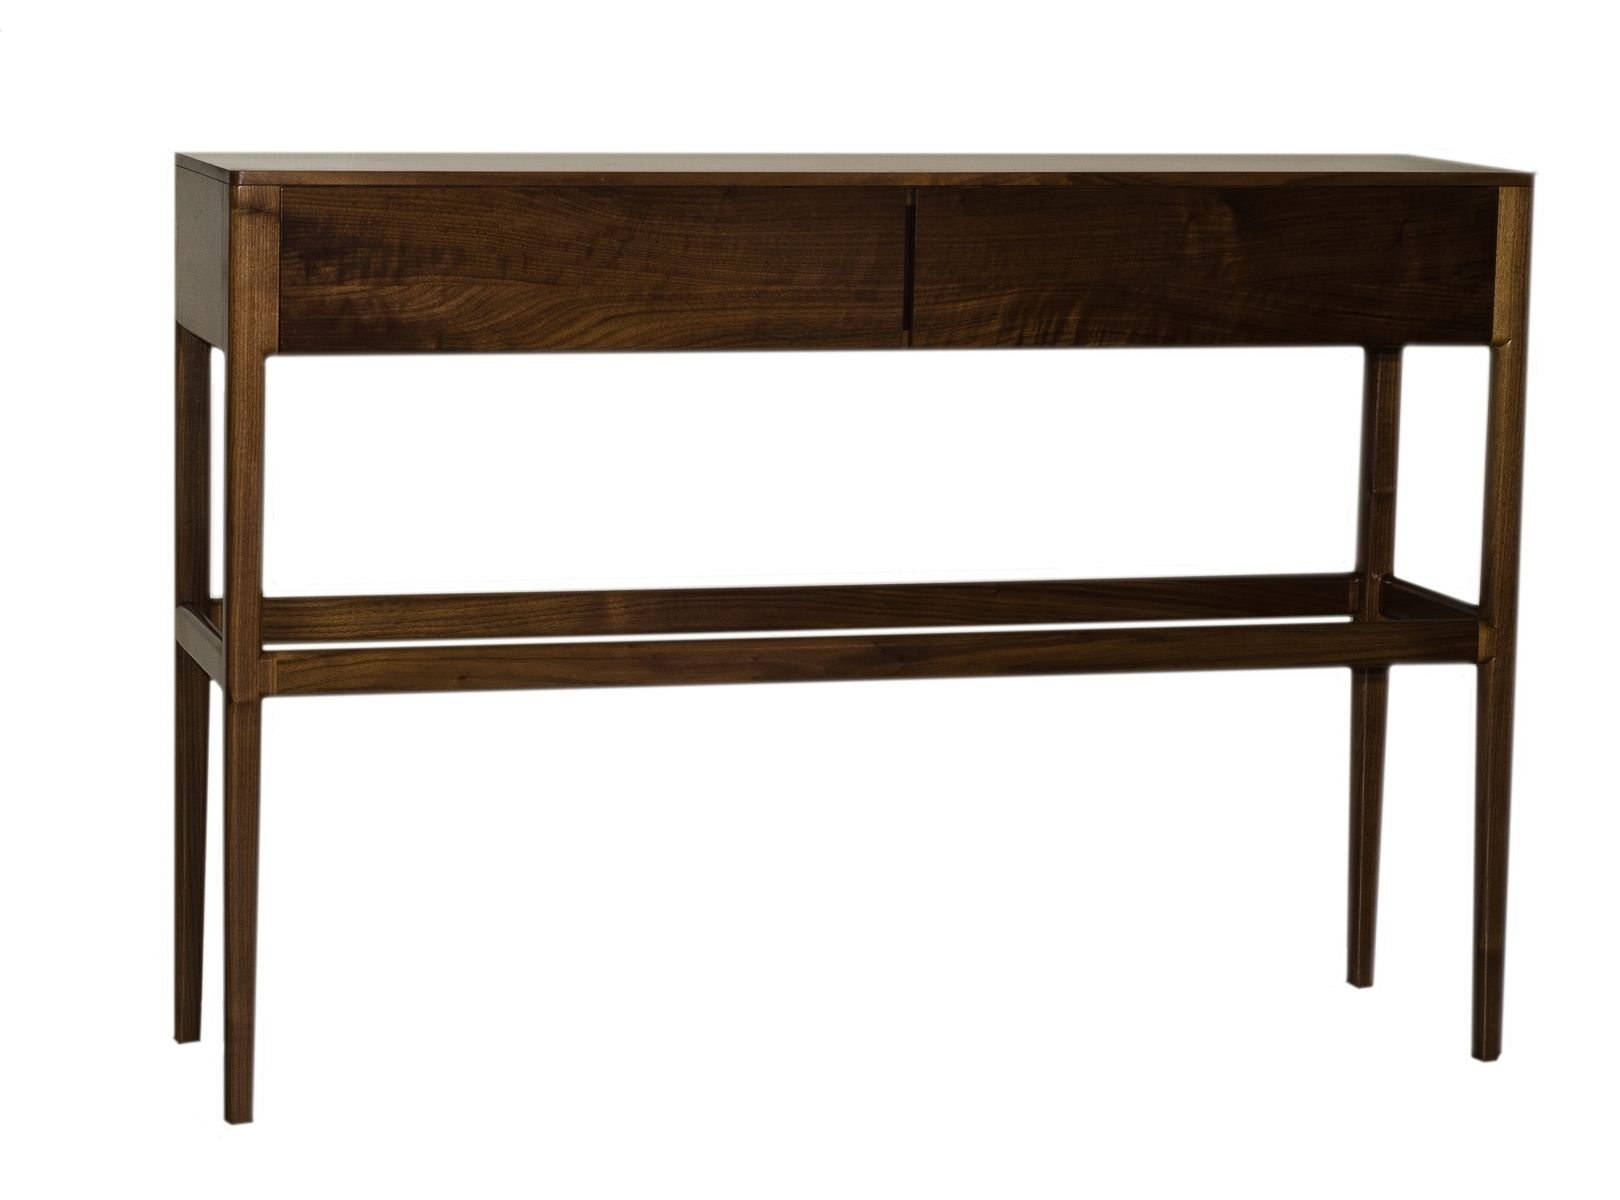 custom danish mid century modern style console table with. Black Bedroom Furniture Sets. Home Design Ideas